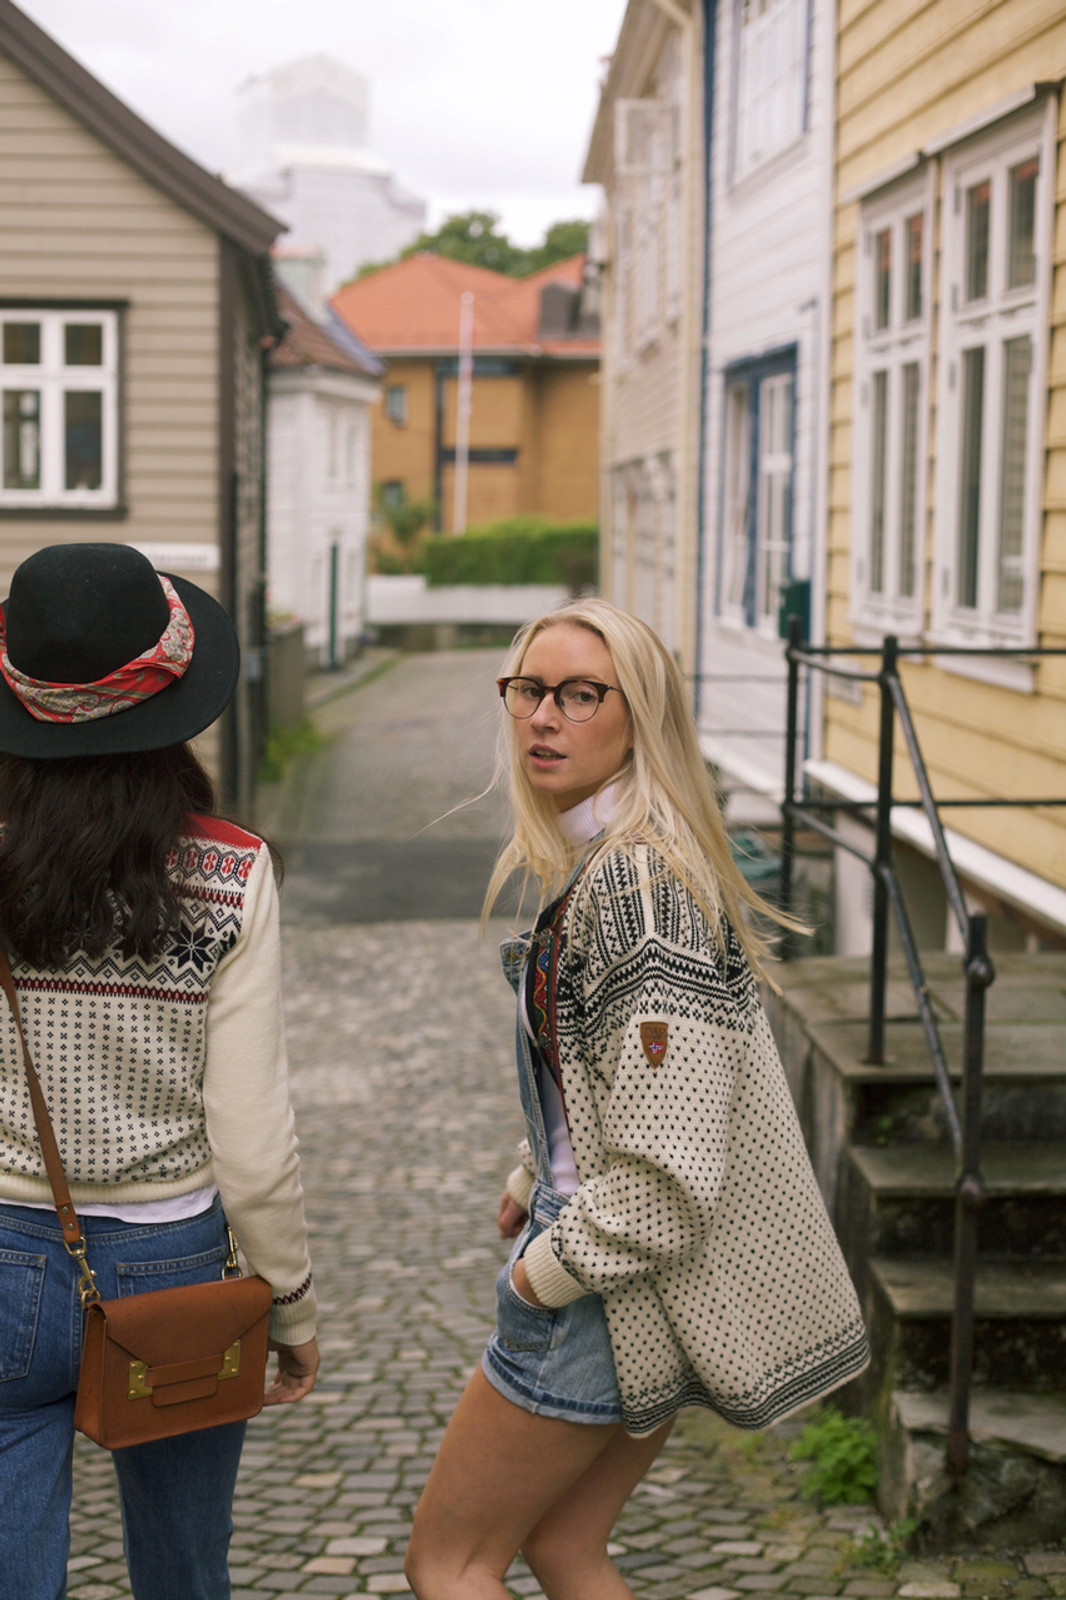 Women walking through Norwegian village wearing Dale of Norway Garmisch ladies sweater in Off White/Navy/Raspberry, 92601-A, and new unisex Setesdal cardigan in Off White/Black, 83291-A.